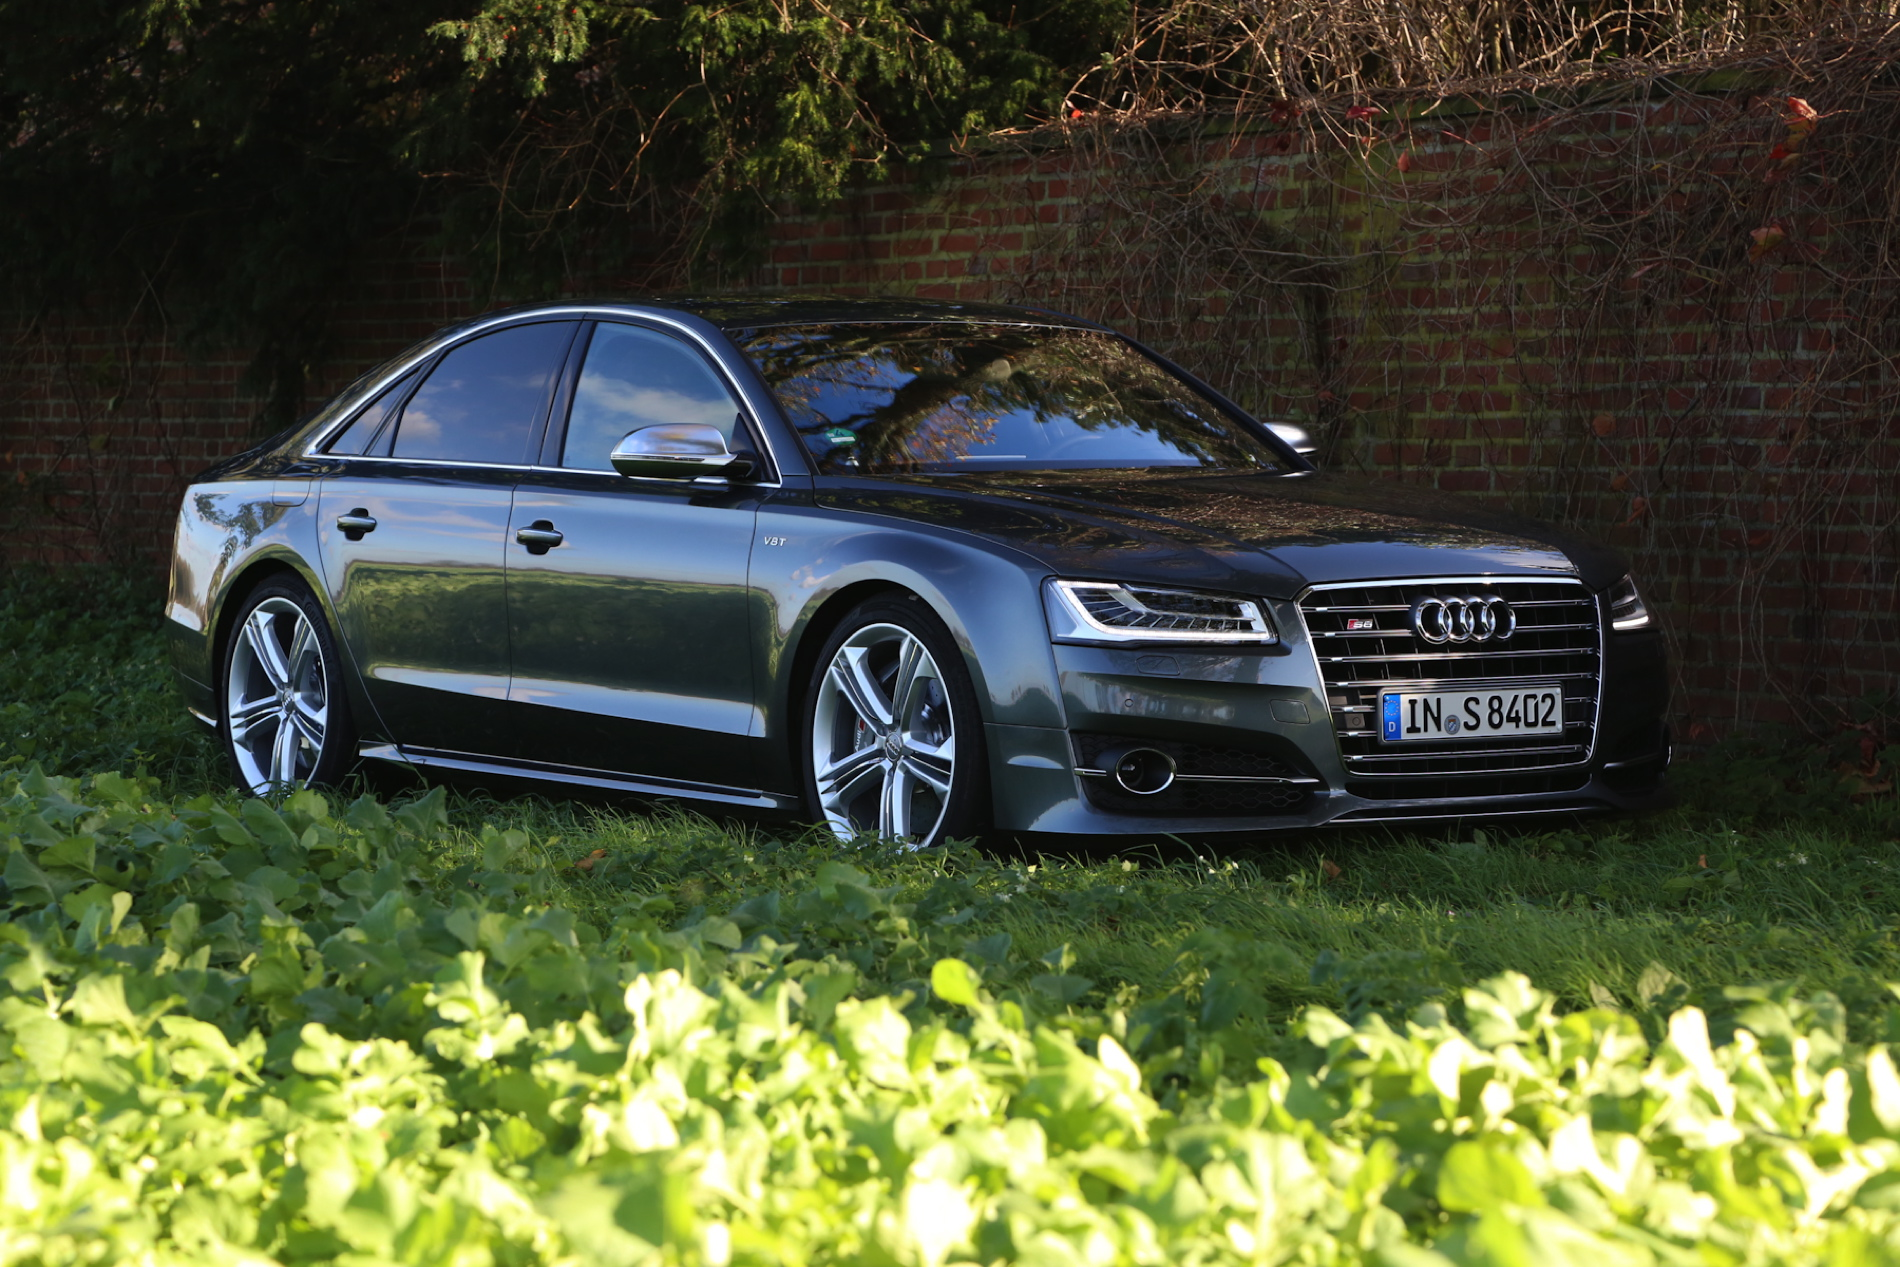 2015 Audi S8 Test Drive And Review The Stately Autobahn Stormer